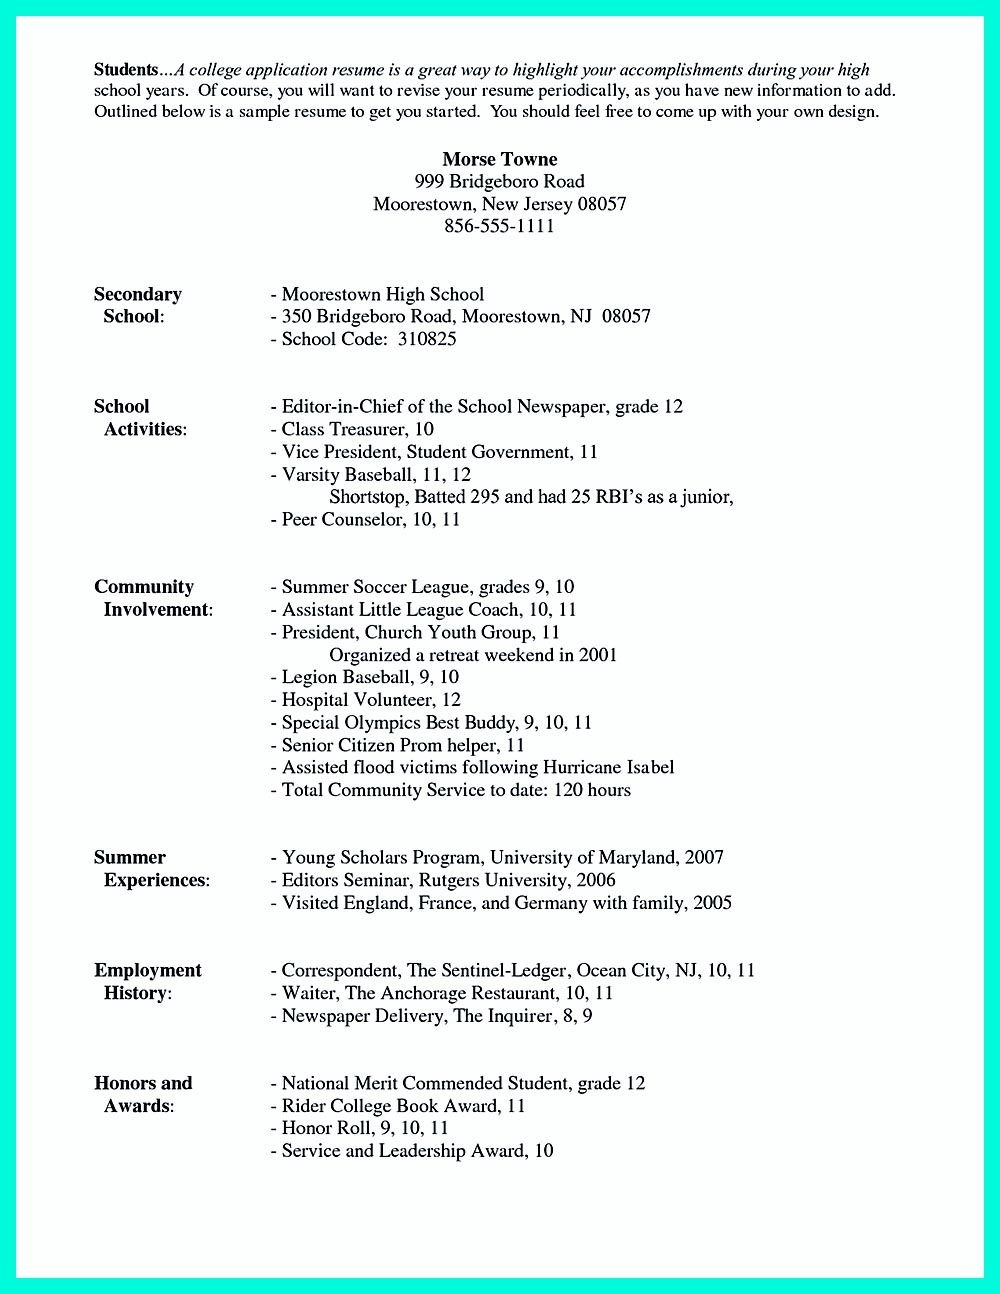 003 Awful College Admission Resume Template Sample  Microsoft Word Application DownloadFull